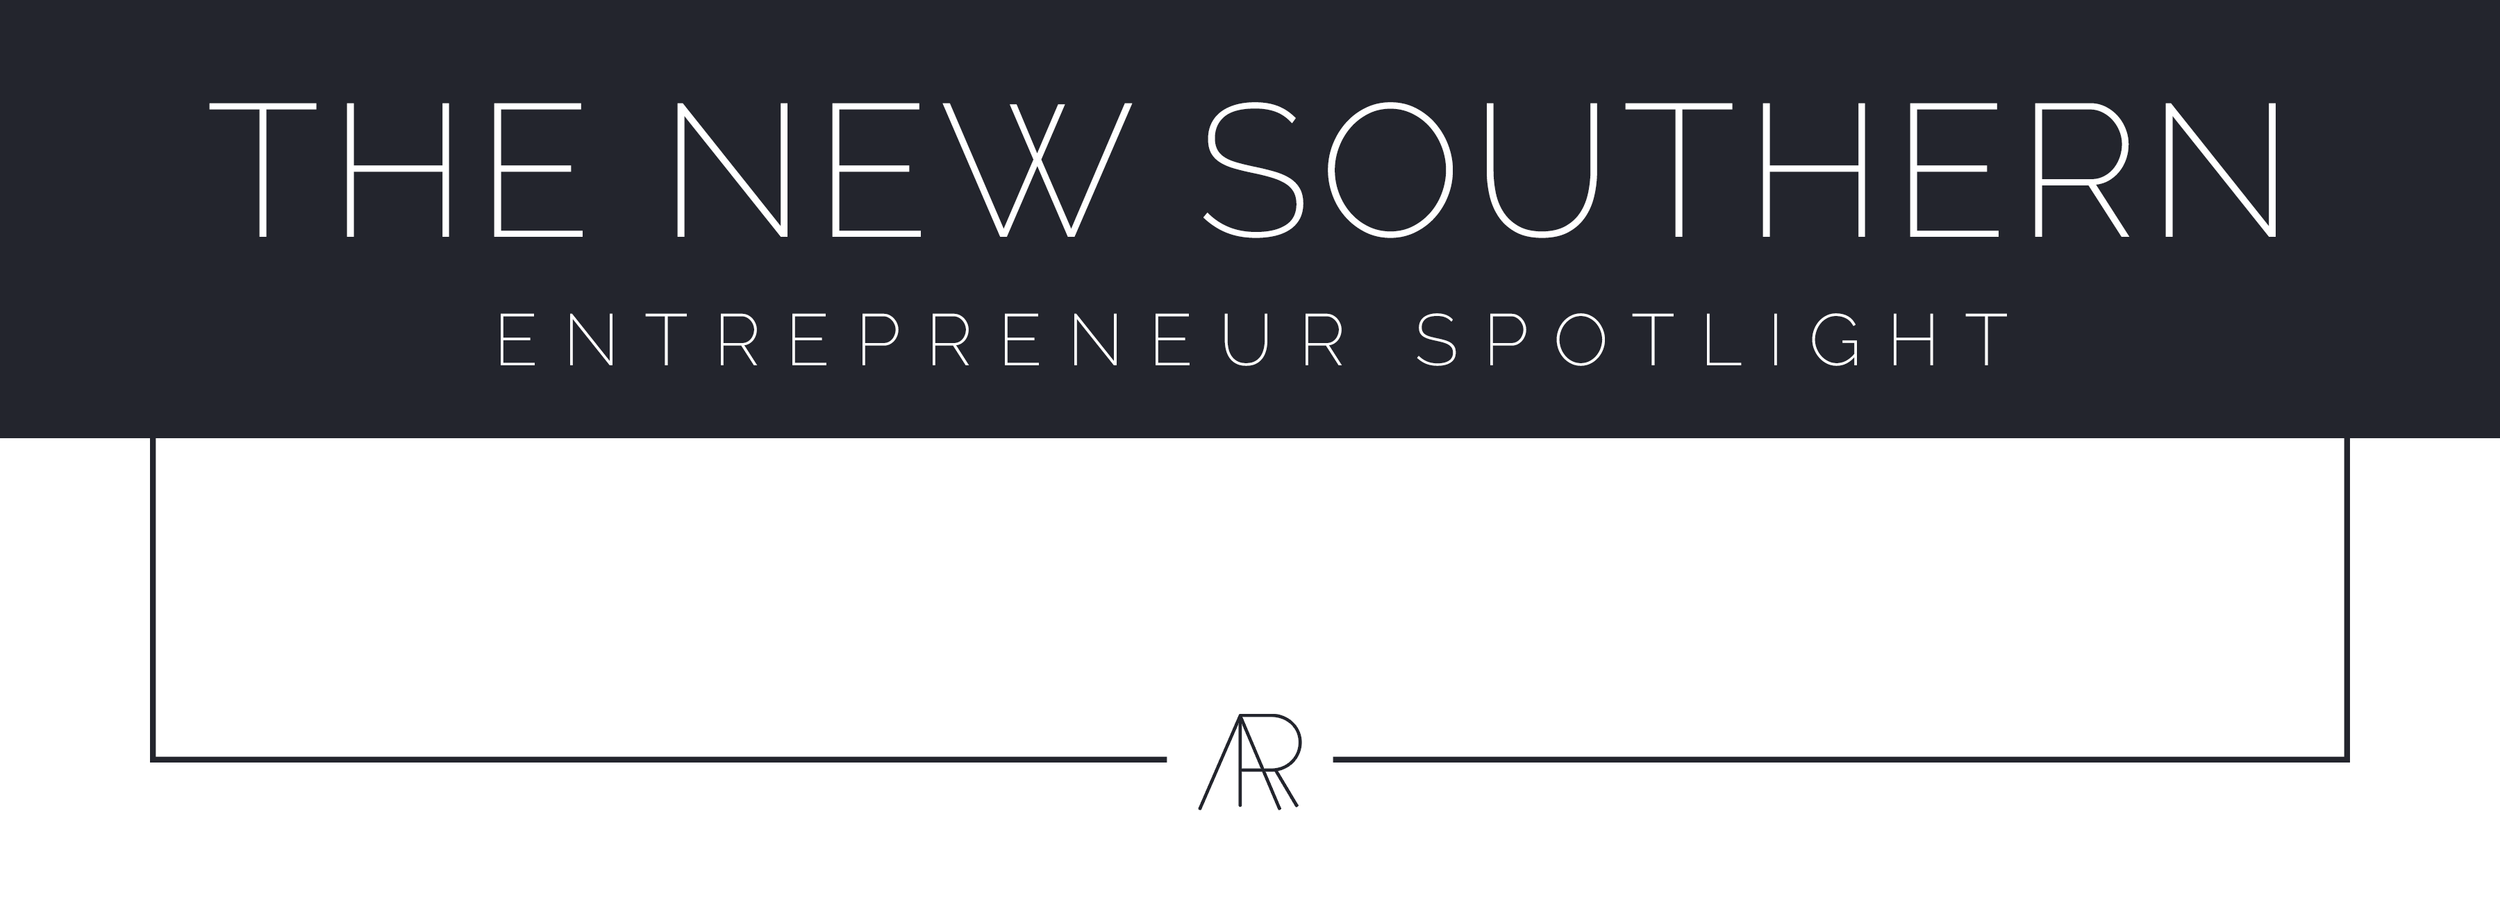 Alyssa Rosenheck's The New Southern Entrepreneur Spotlight with Allison Casper Adams, Director of Oxford Exchange Tampa Florida